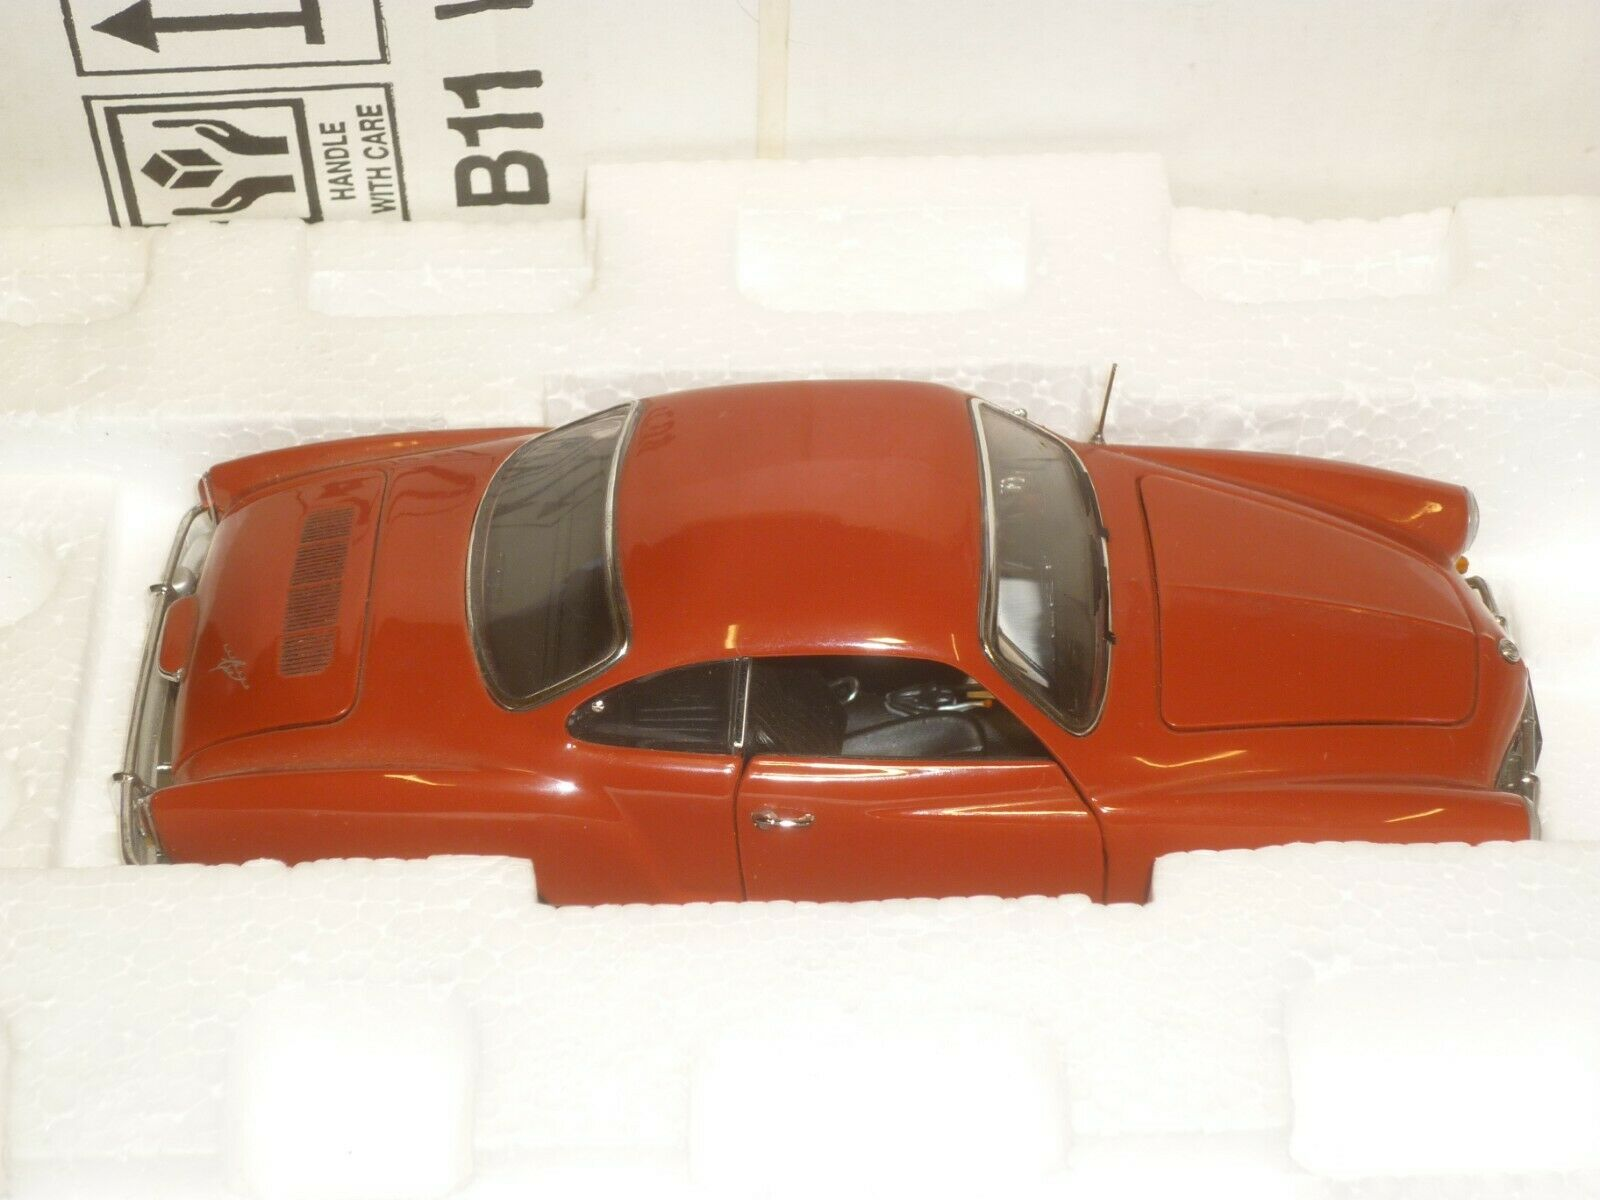 Un Franklin Comme neuf scale model of a 1967  Volkswagen KarhomHommes Ghia, boxed & papiers  distribution globale